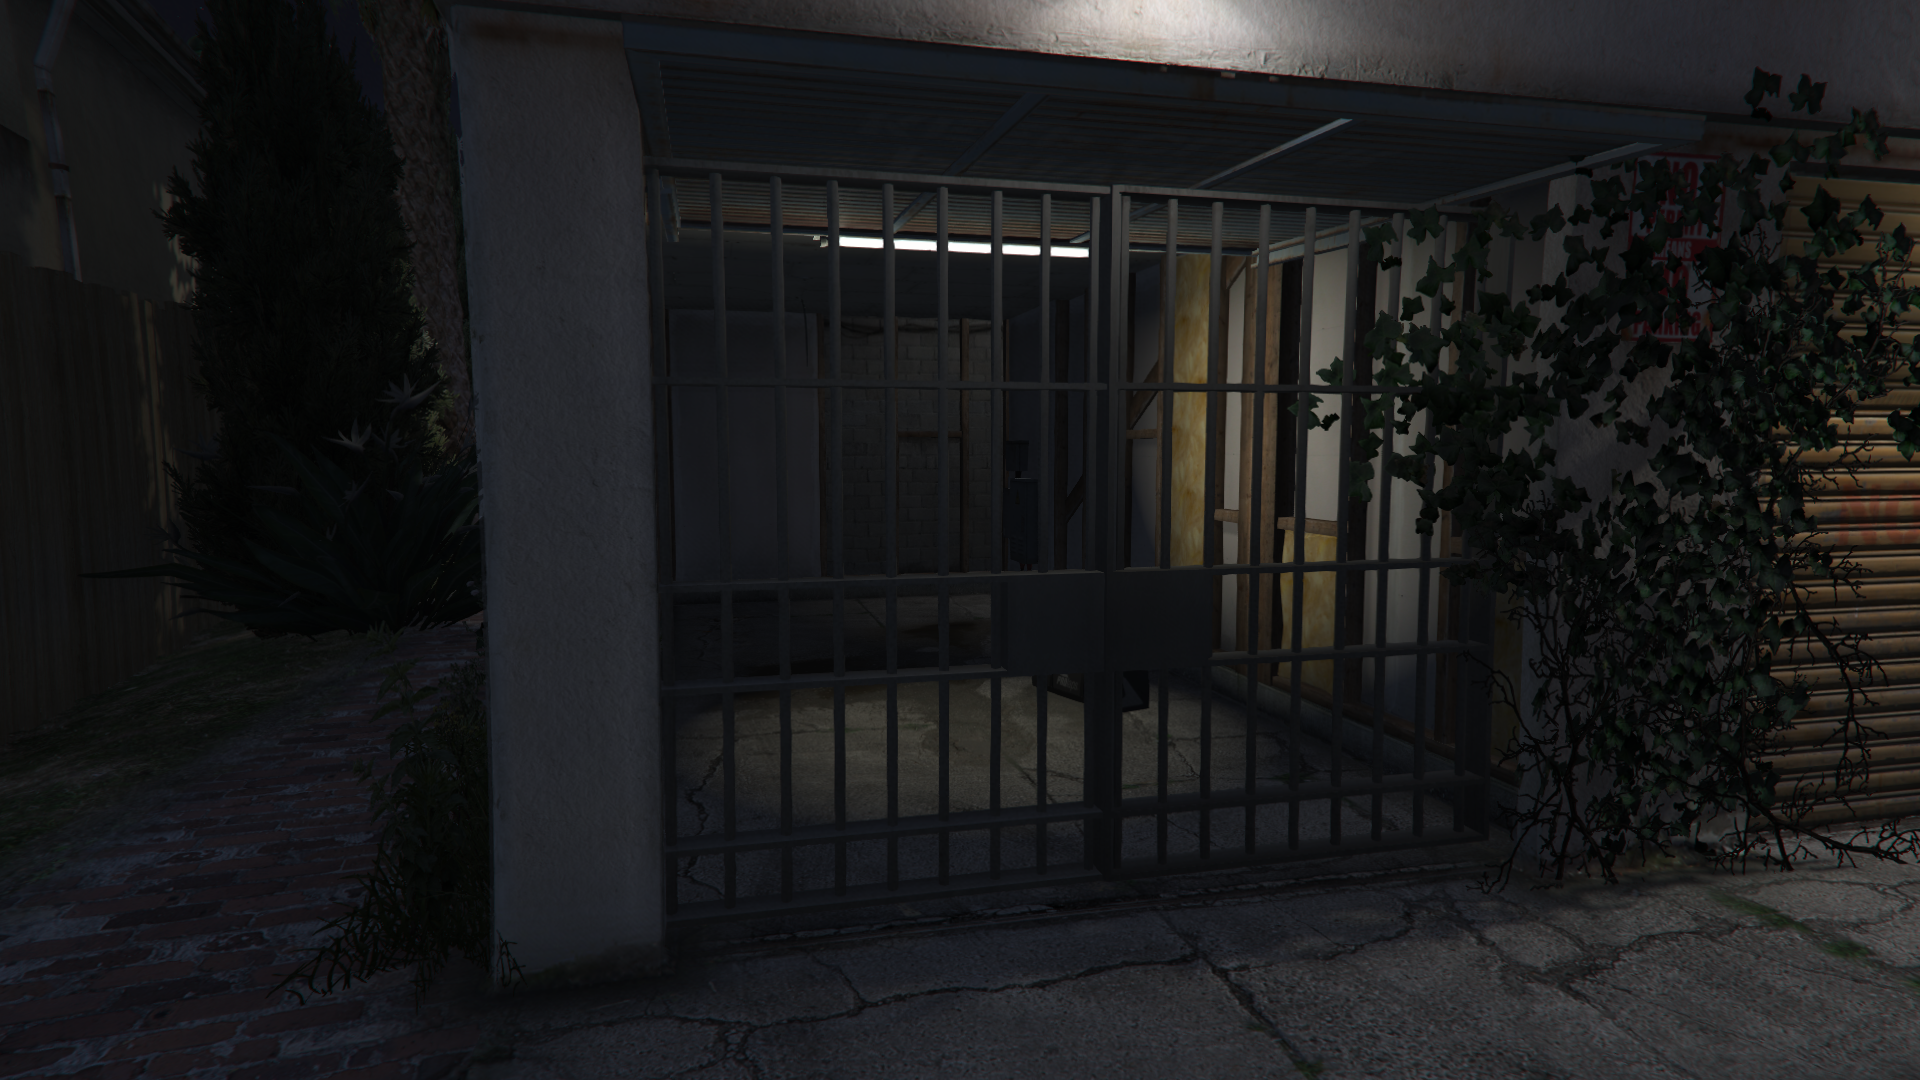 Grand-Theft-Auto-V-Screenshot-2020-11-22-00-30-38-72